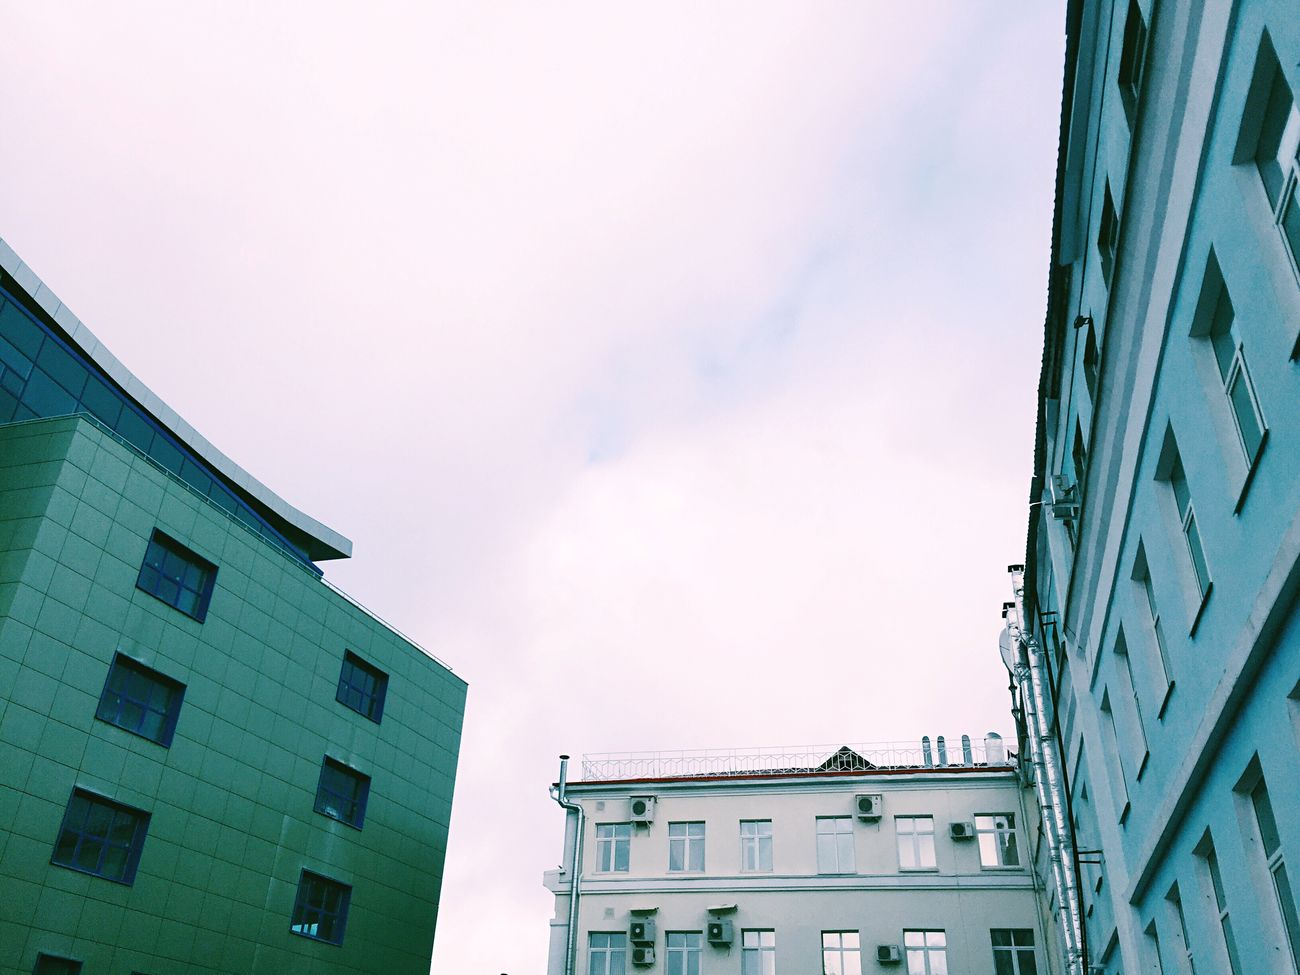 Building Exterior Architecture Built Structure Low Angle View Sky No People Outdoors City Day Followme холодно Cold